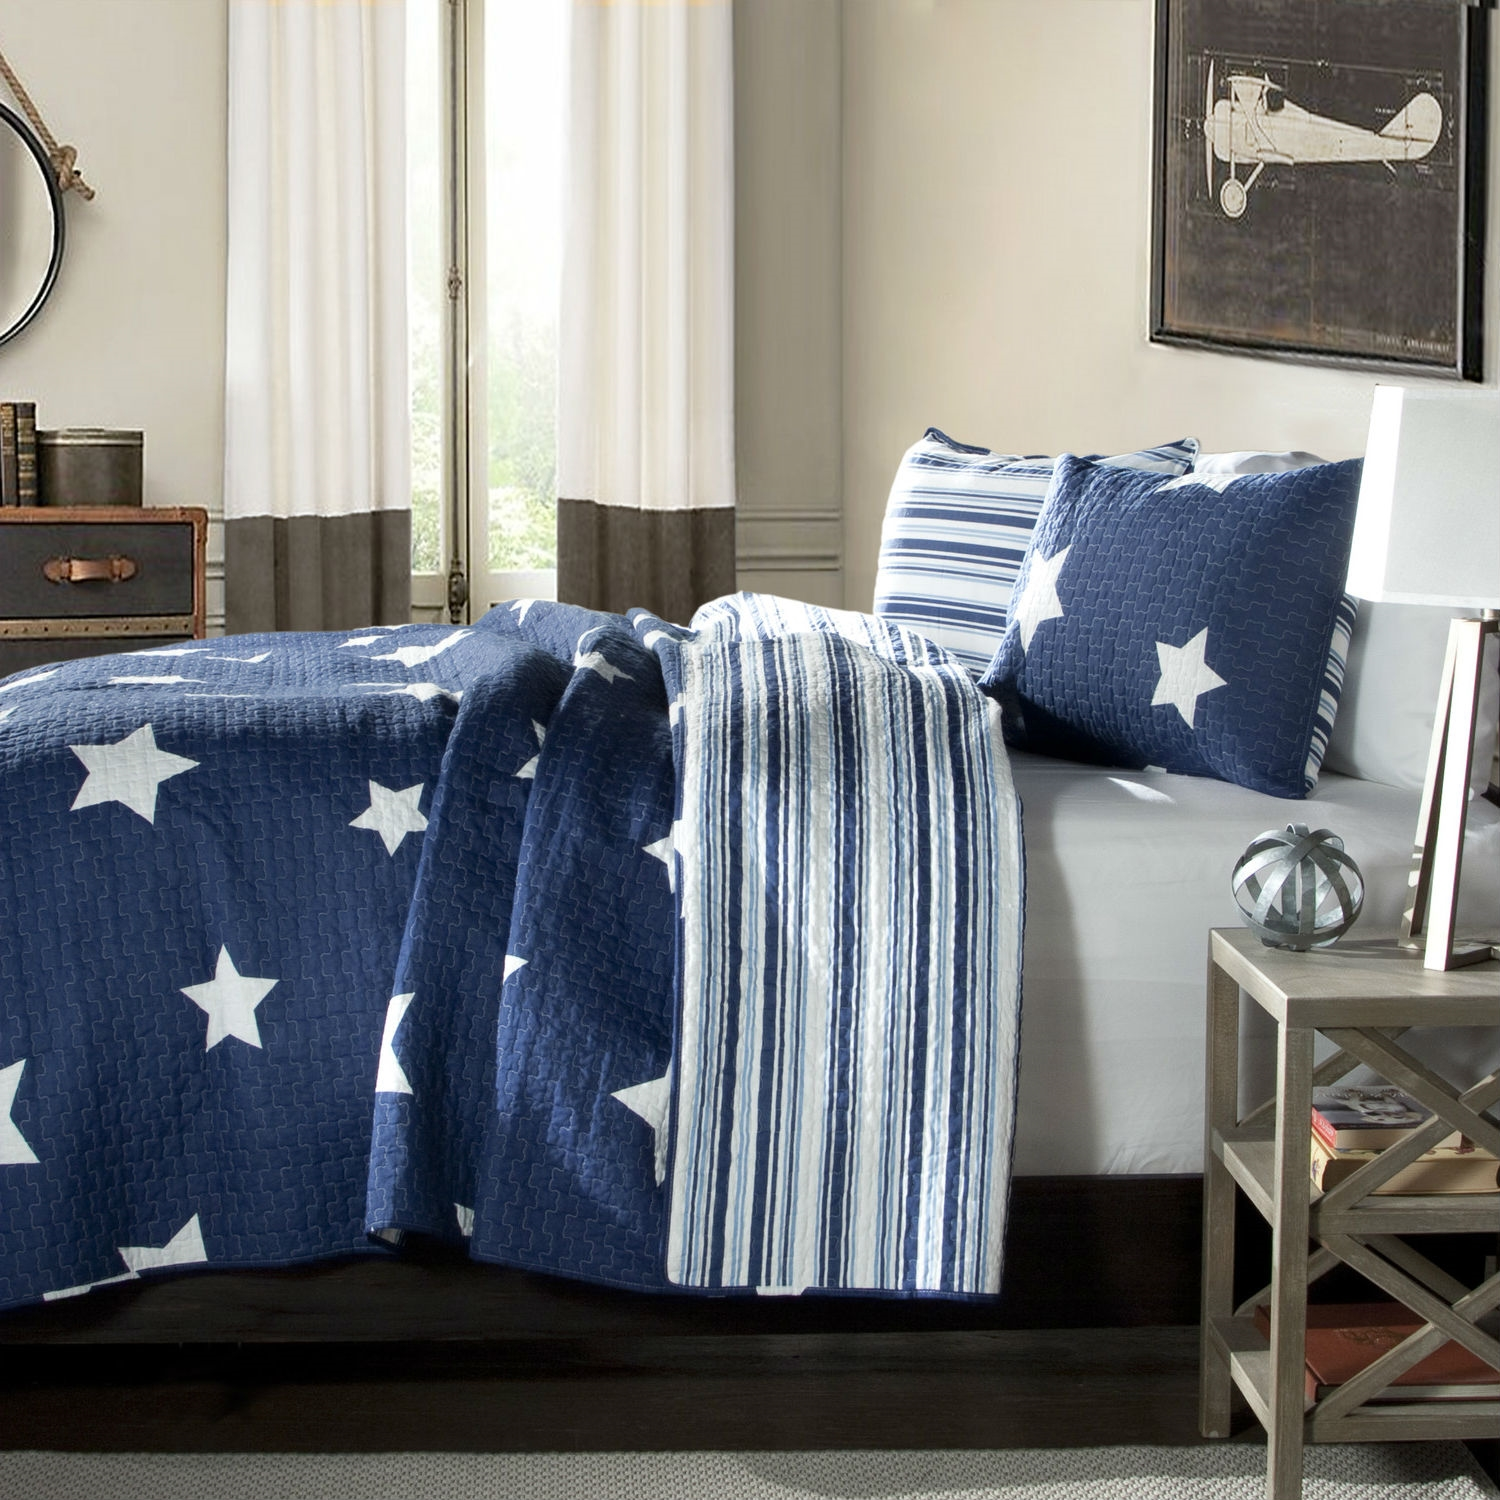 Navy Star And Stripes At Night Quilt Coverlet Bedspread Set : quilt coverlet - Adamdwight.com